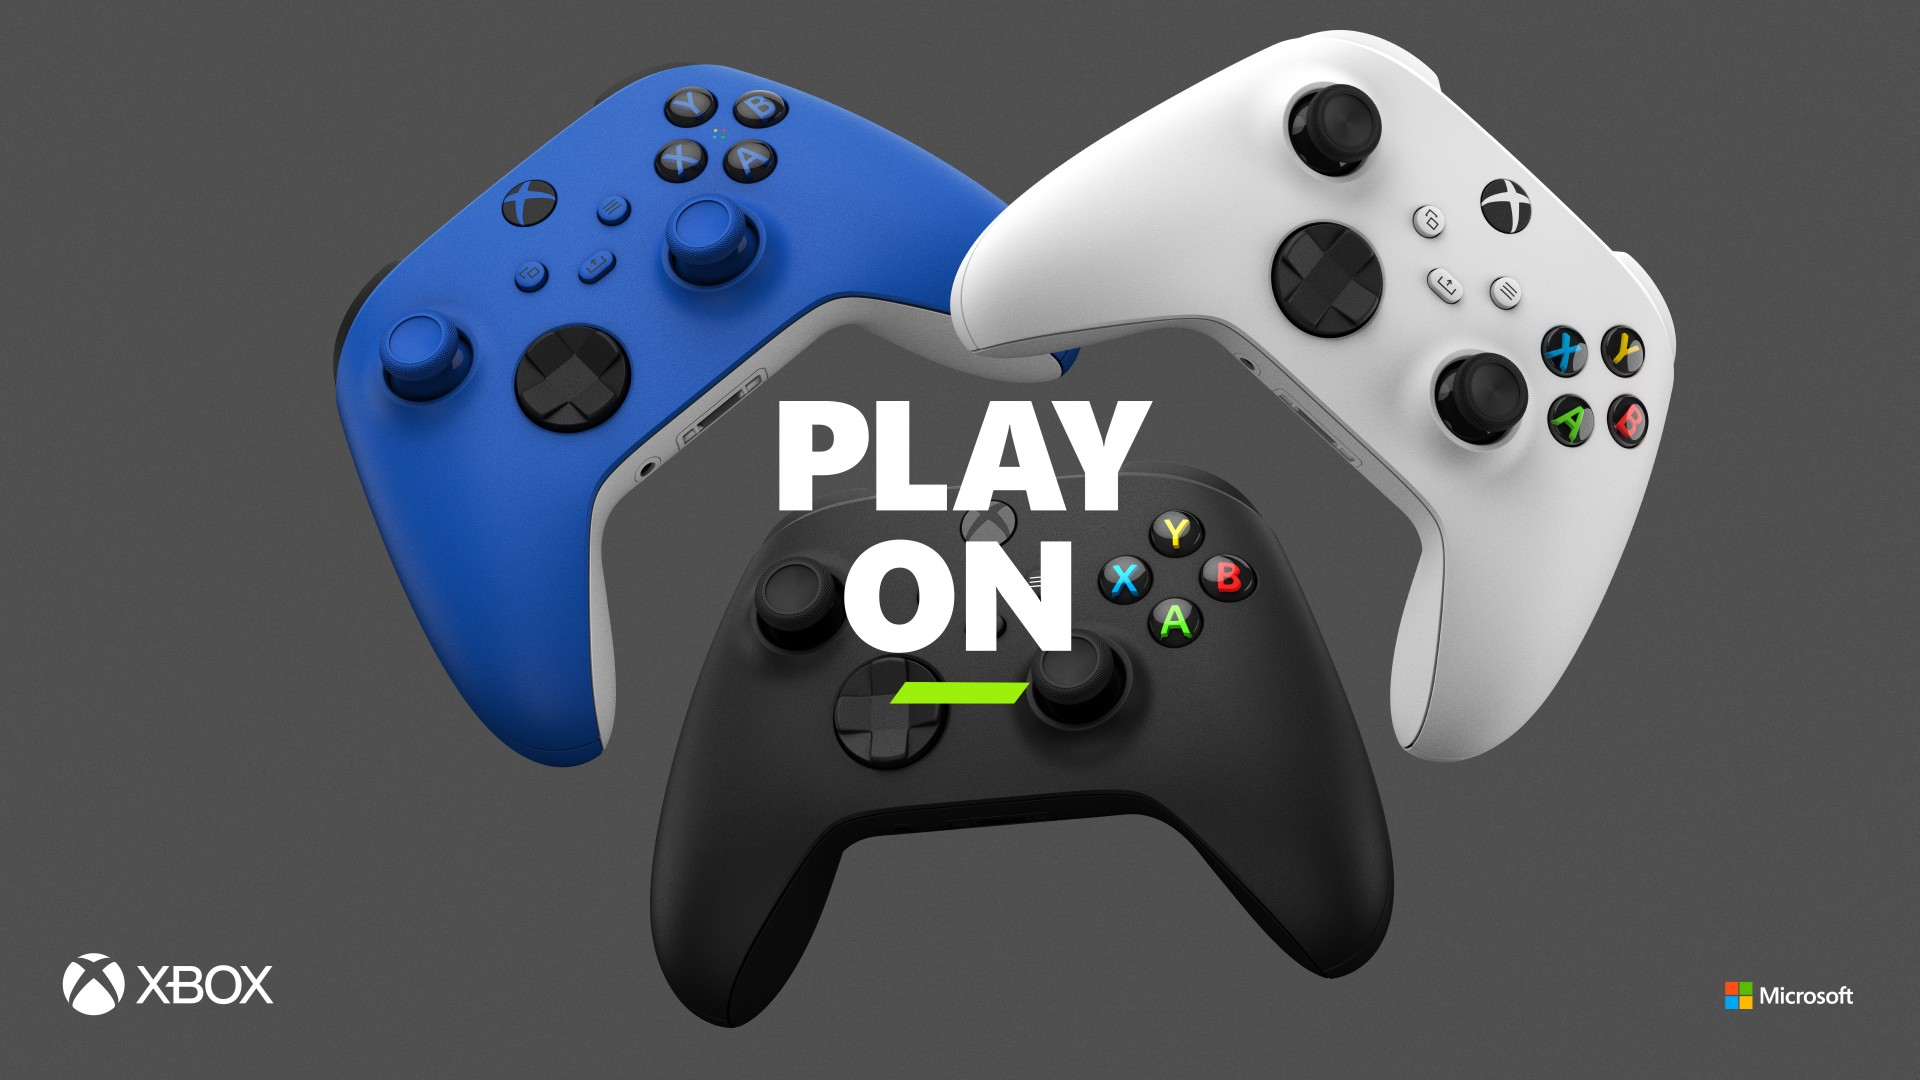 Introducing Our Launch Line Up Of Next Gen Xbox Accessories Coming November 10 Xbox Wire